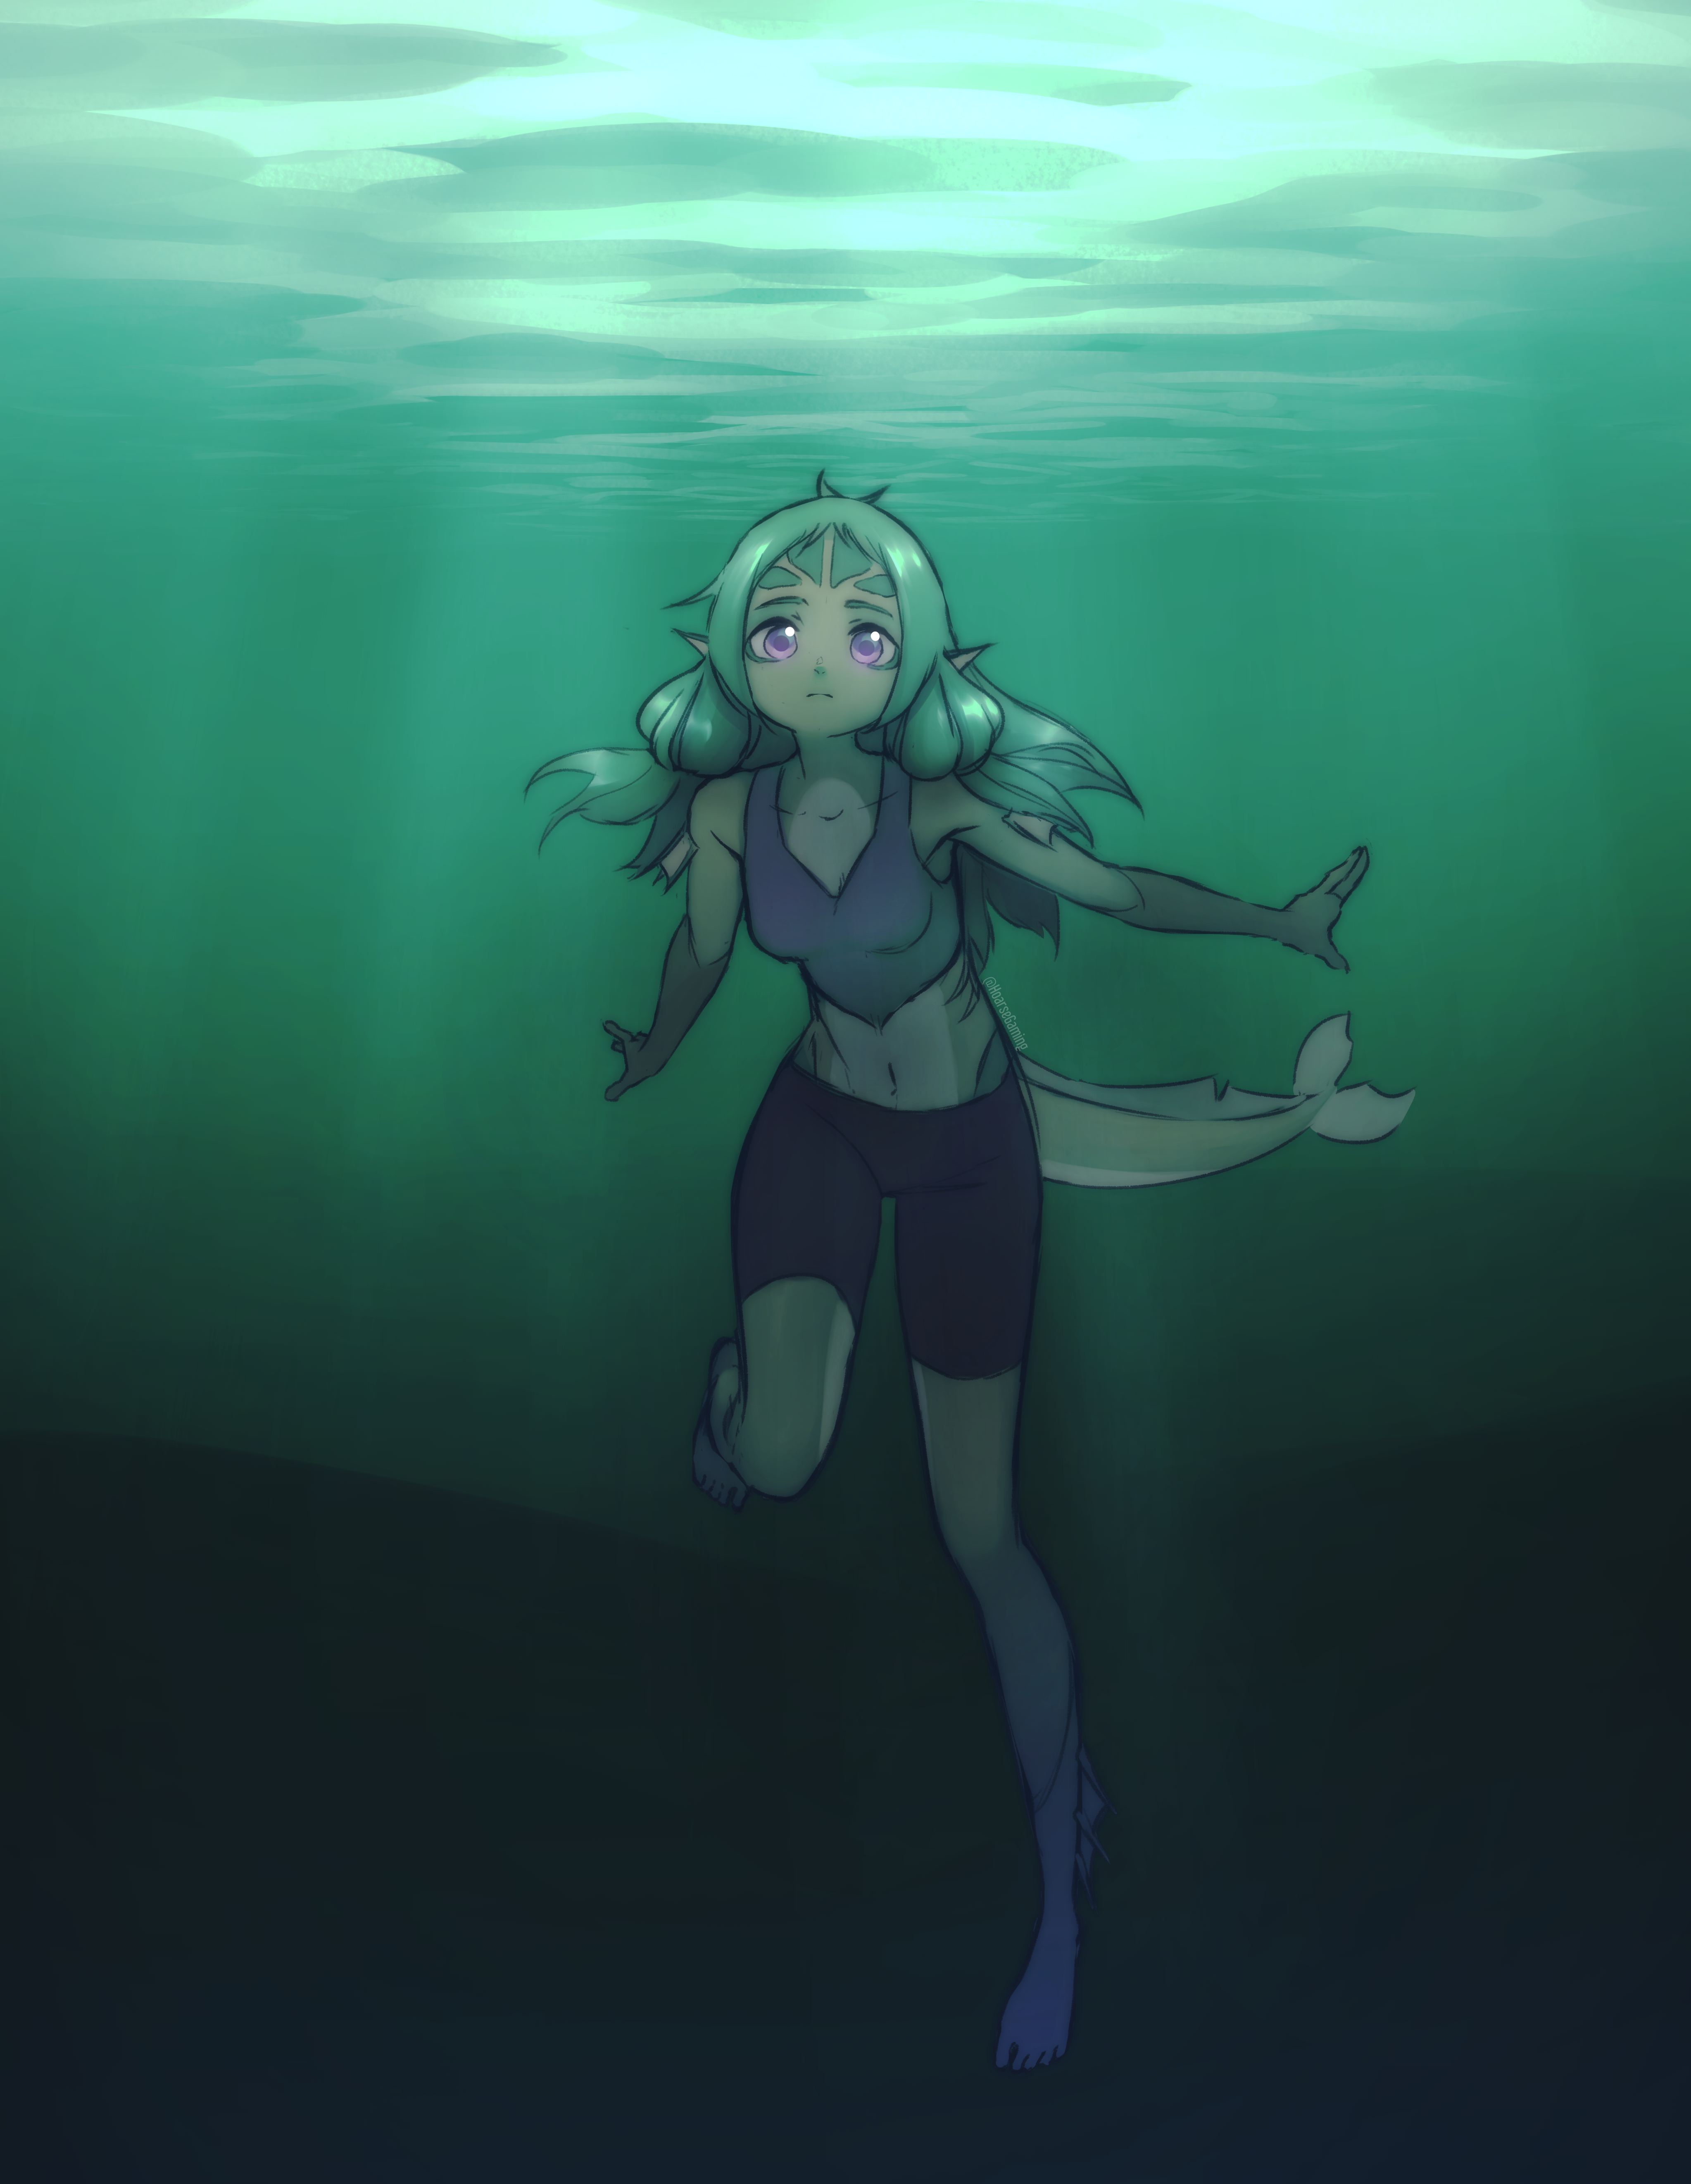 Asher the Fish Girl